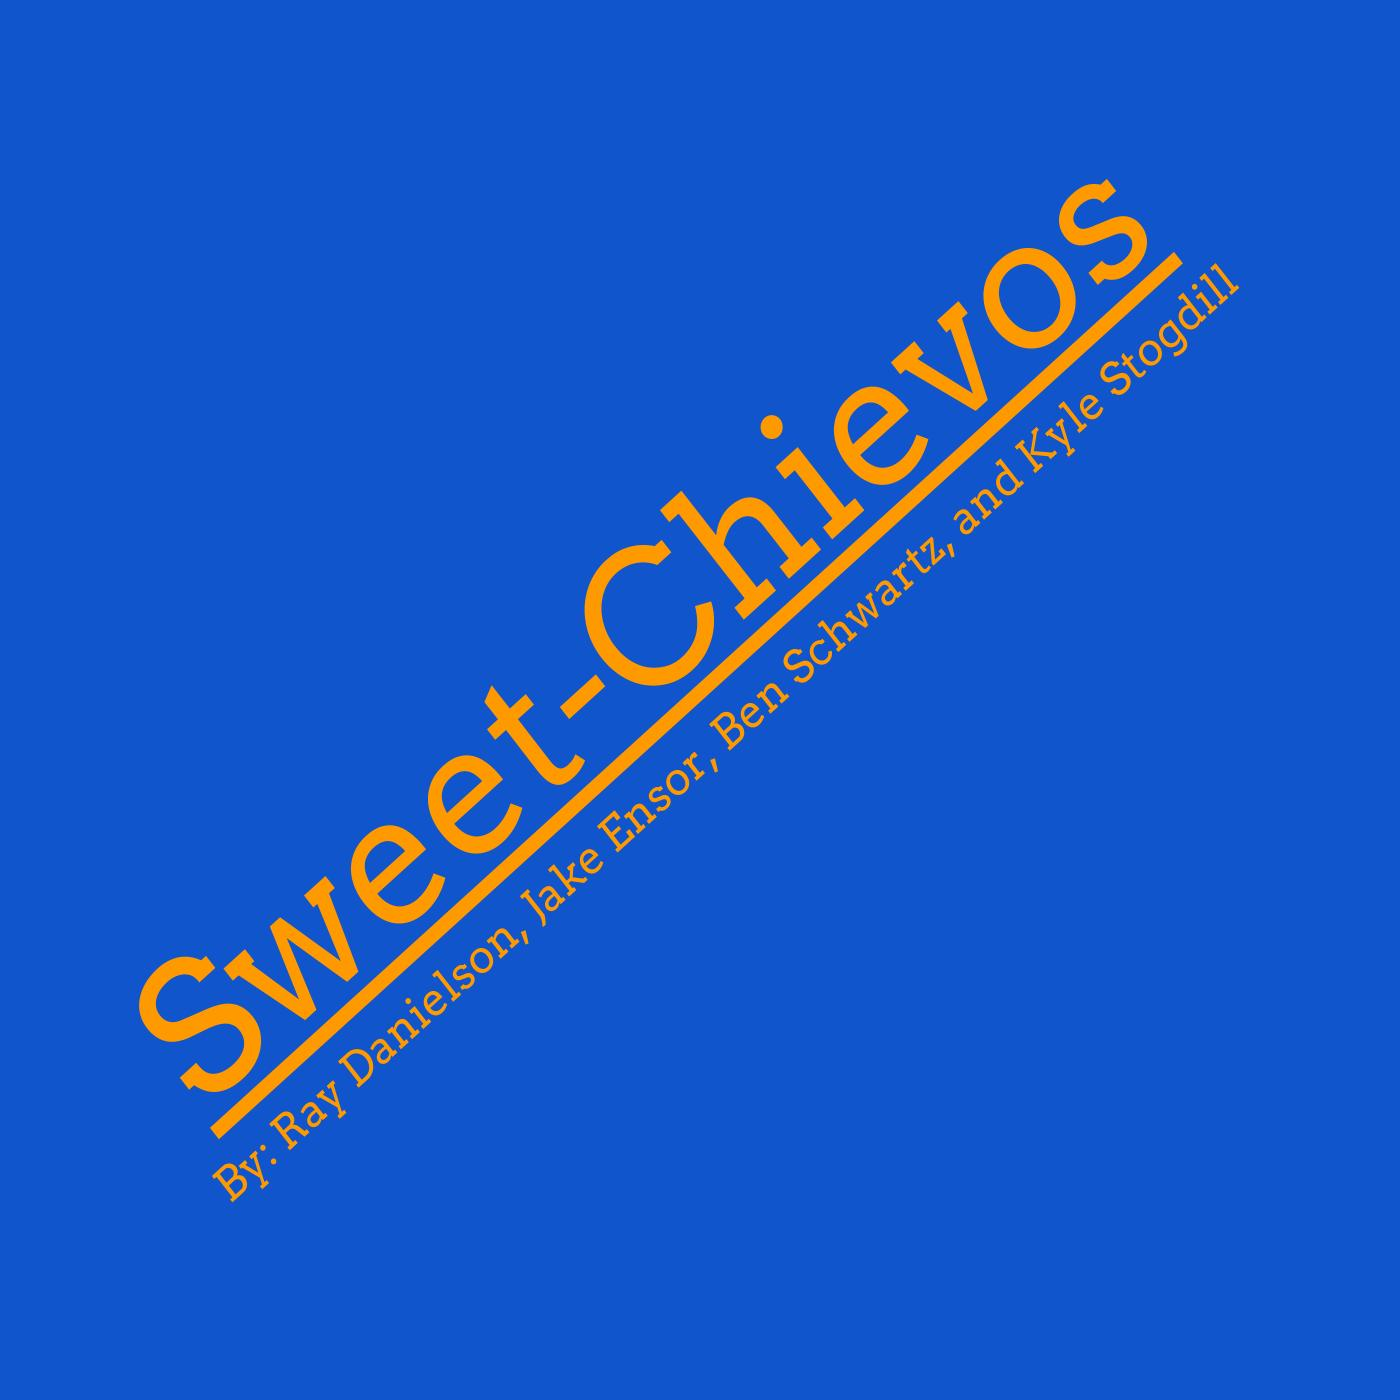 Sweet-Chievos